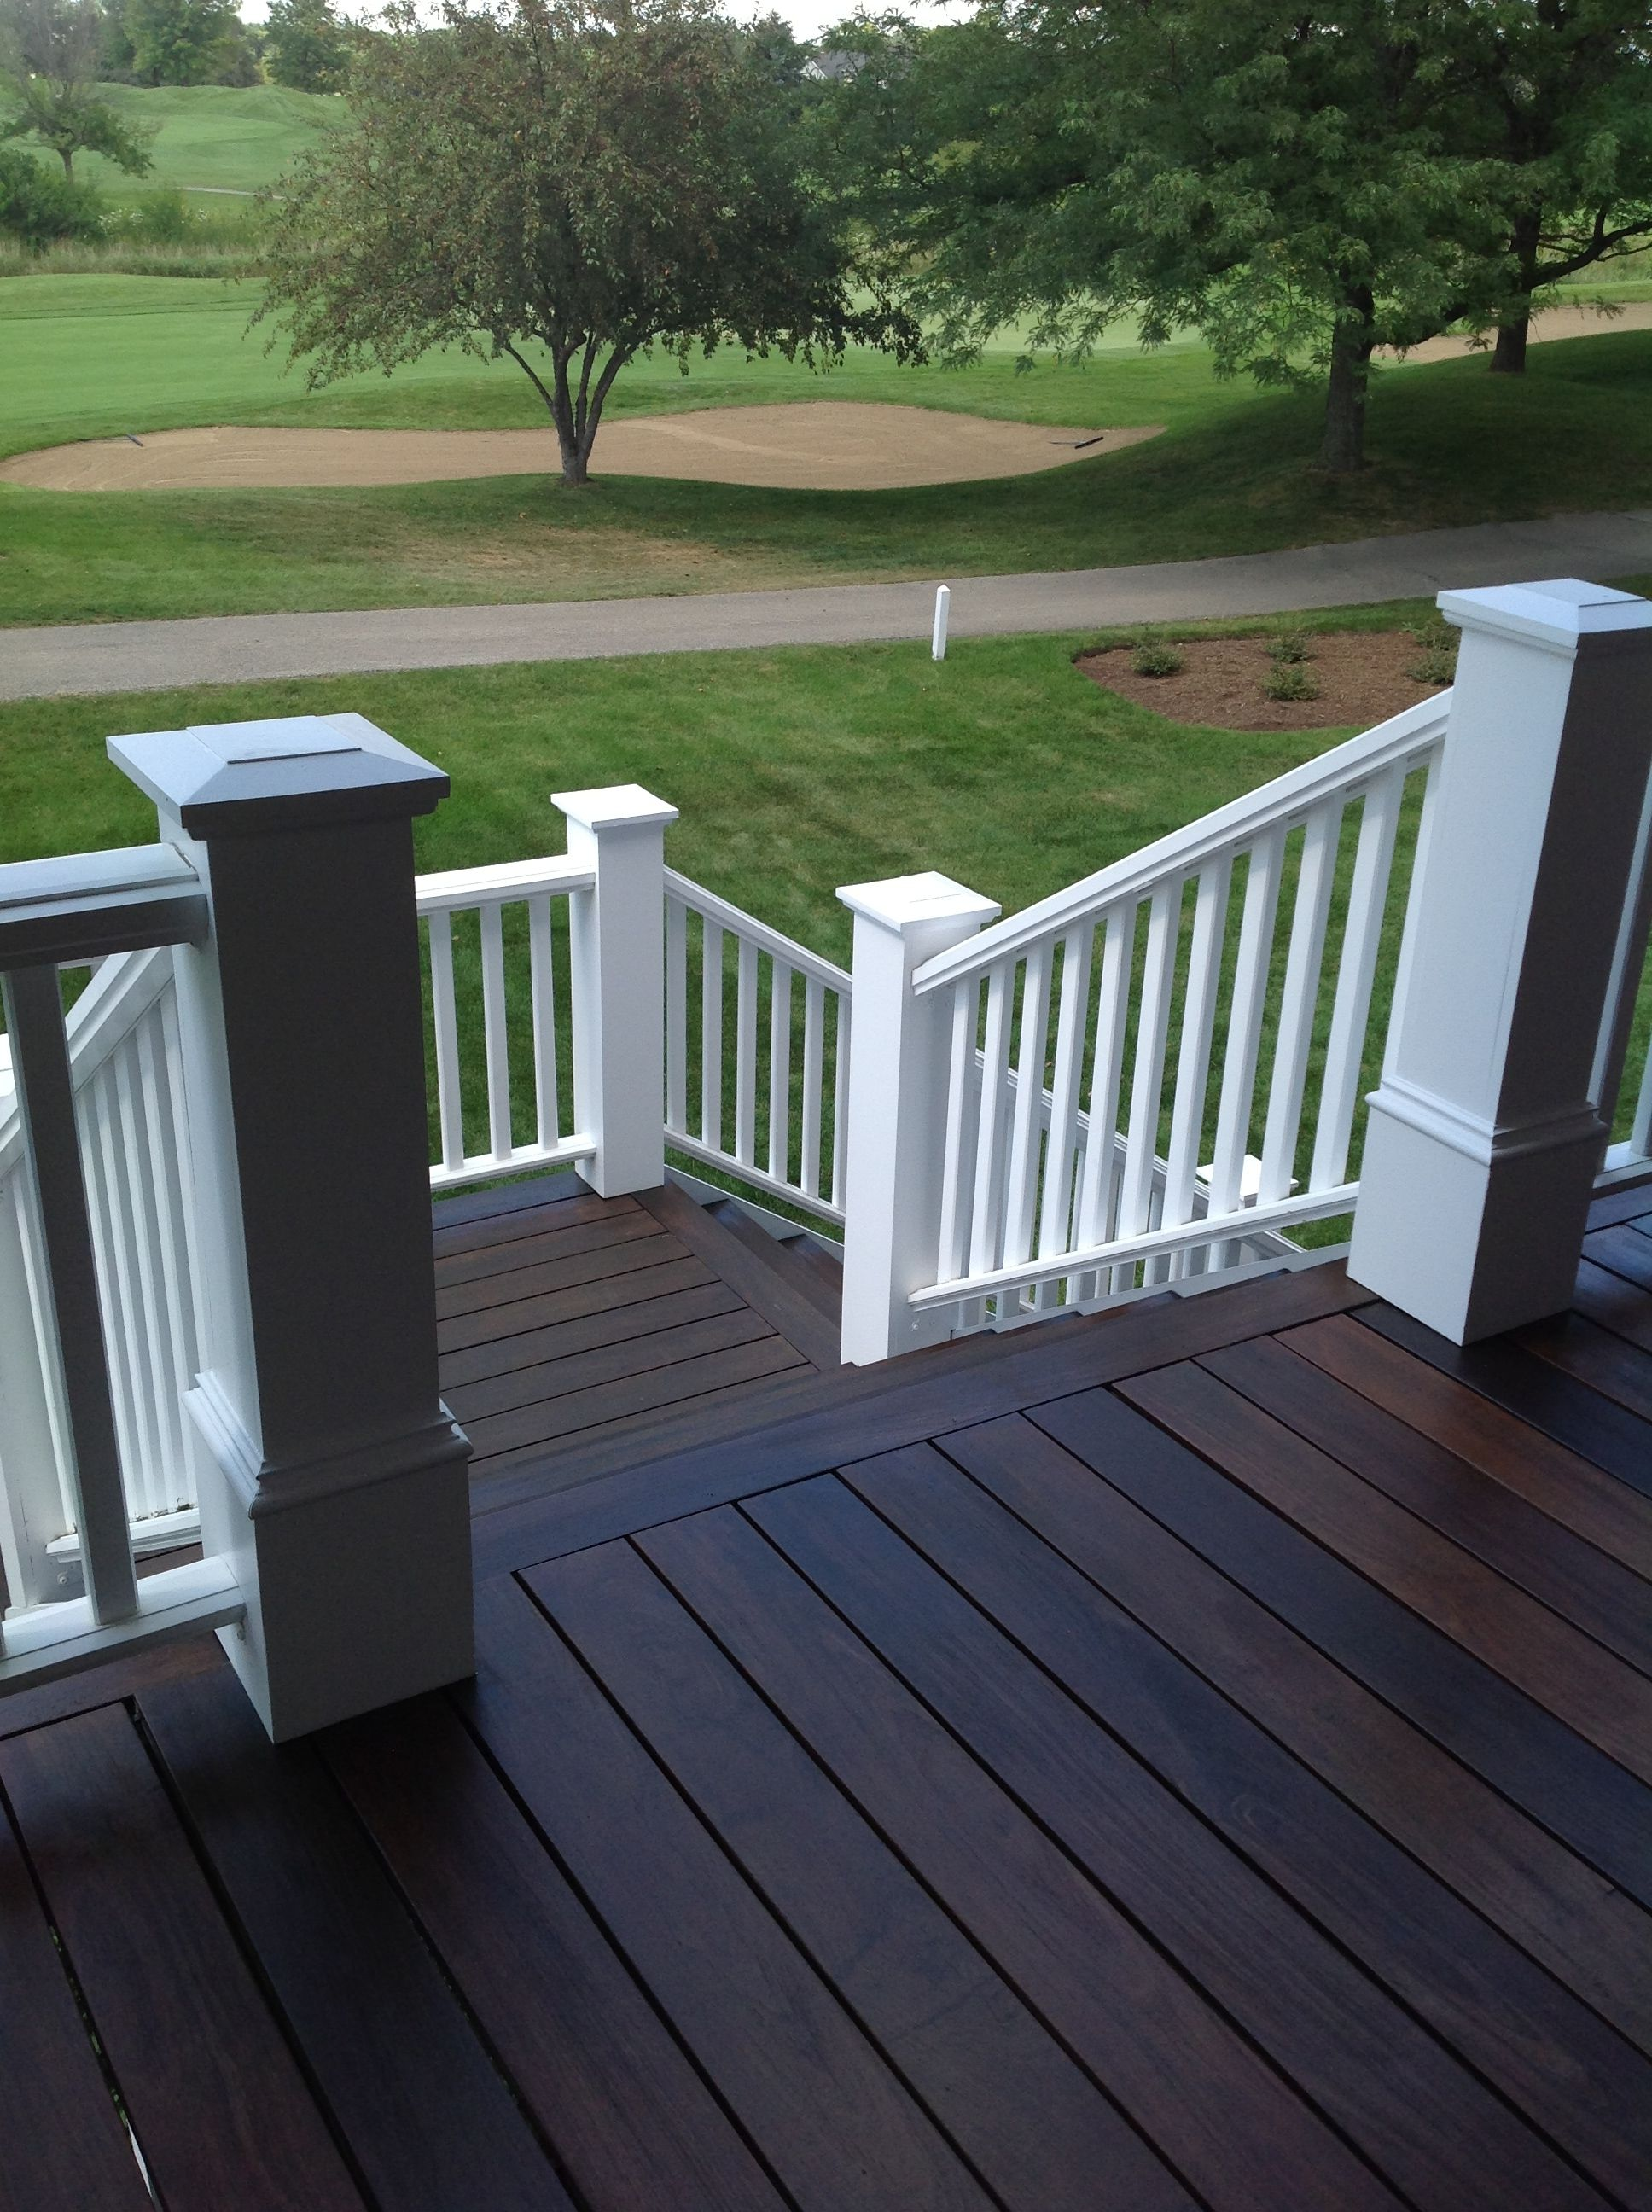 Dark Cool Deck Paint Deck Paint Colors Porch Design Deck Paint